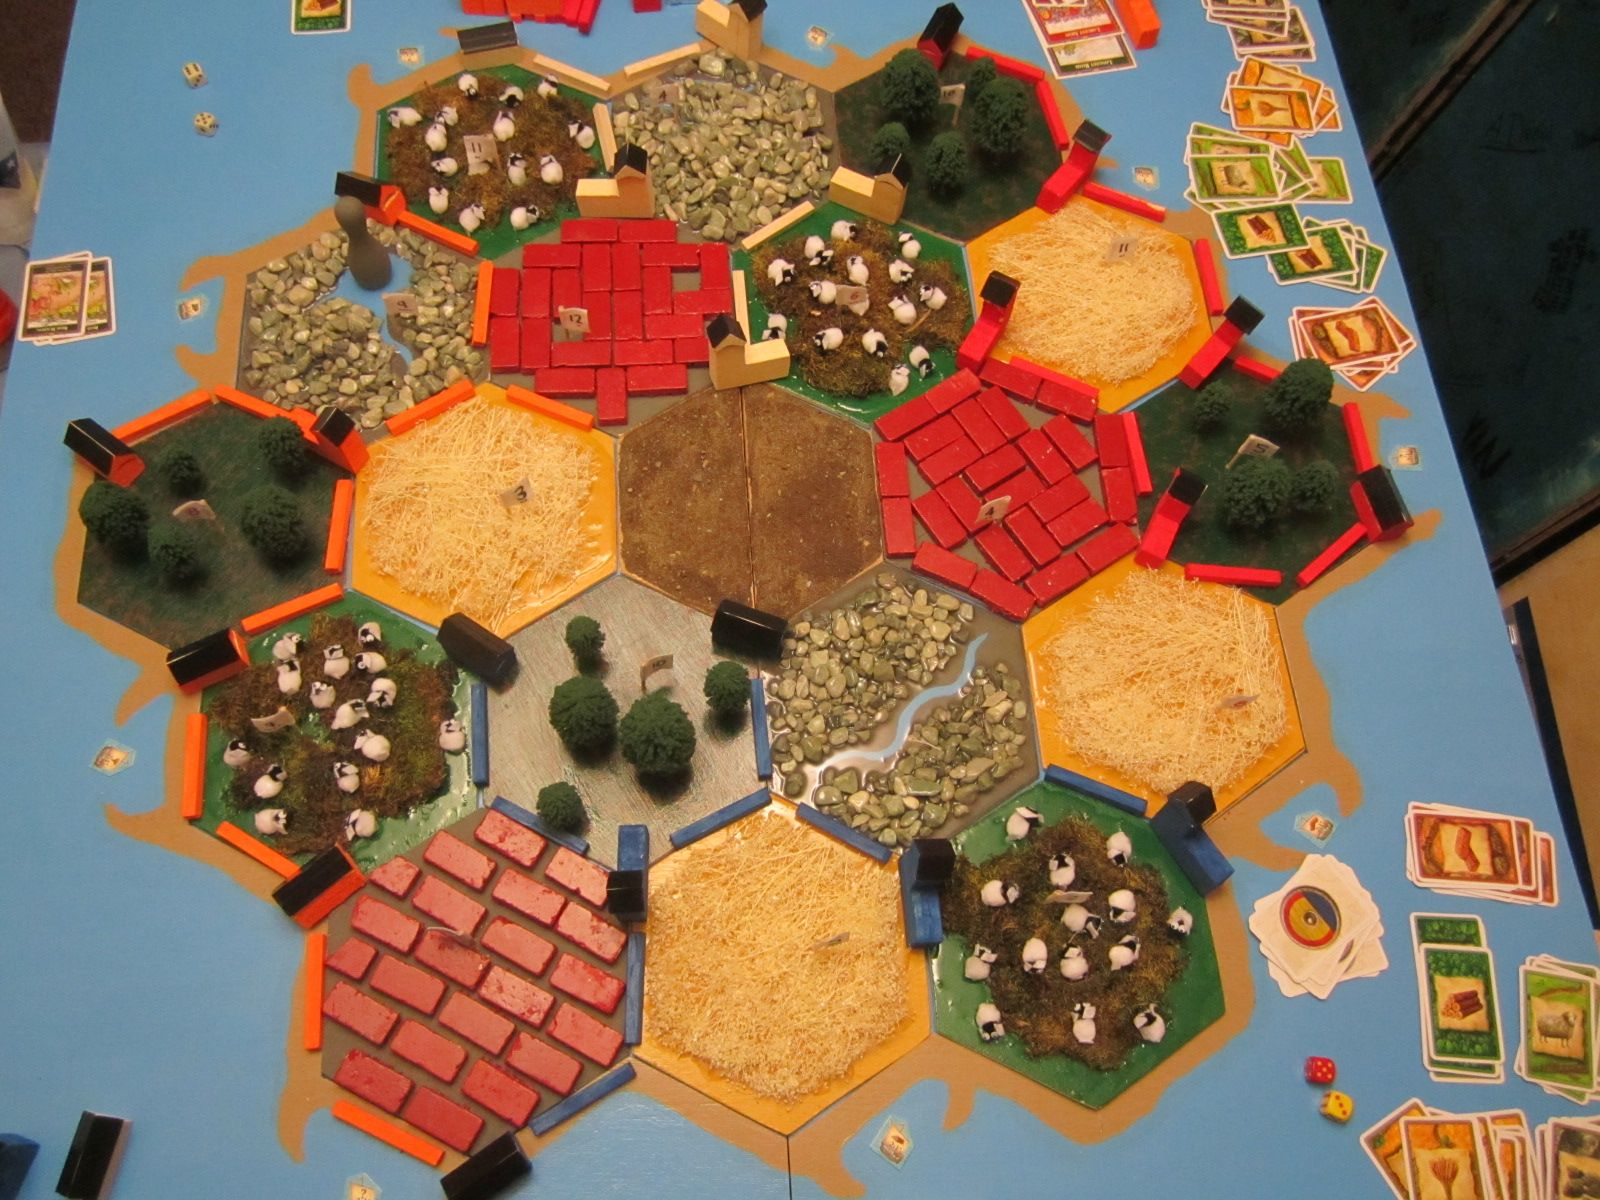 4'x4' wooden Settlers of Catan board. Players use